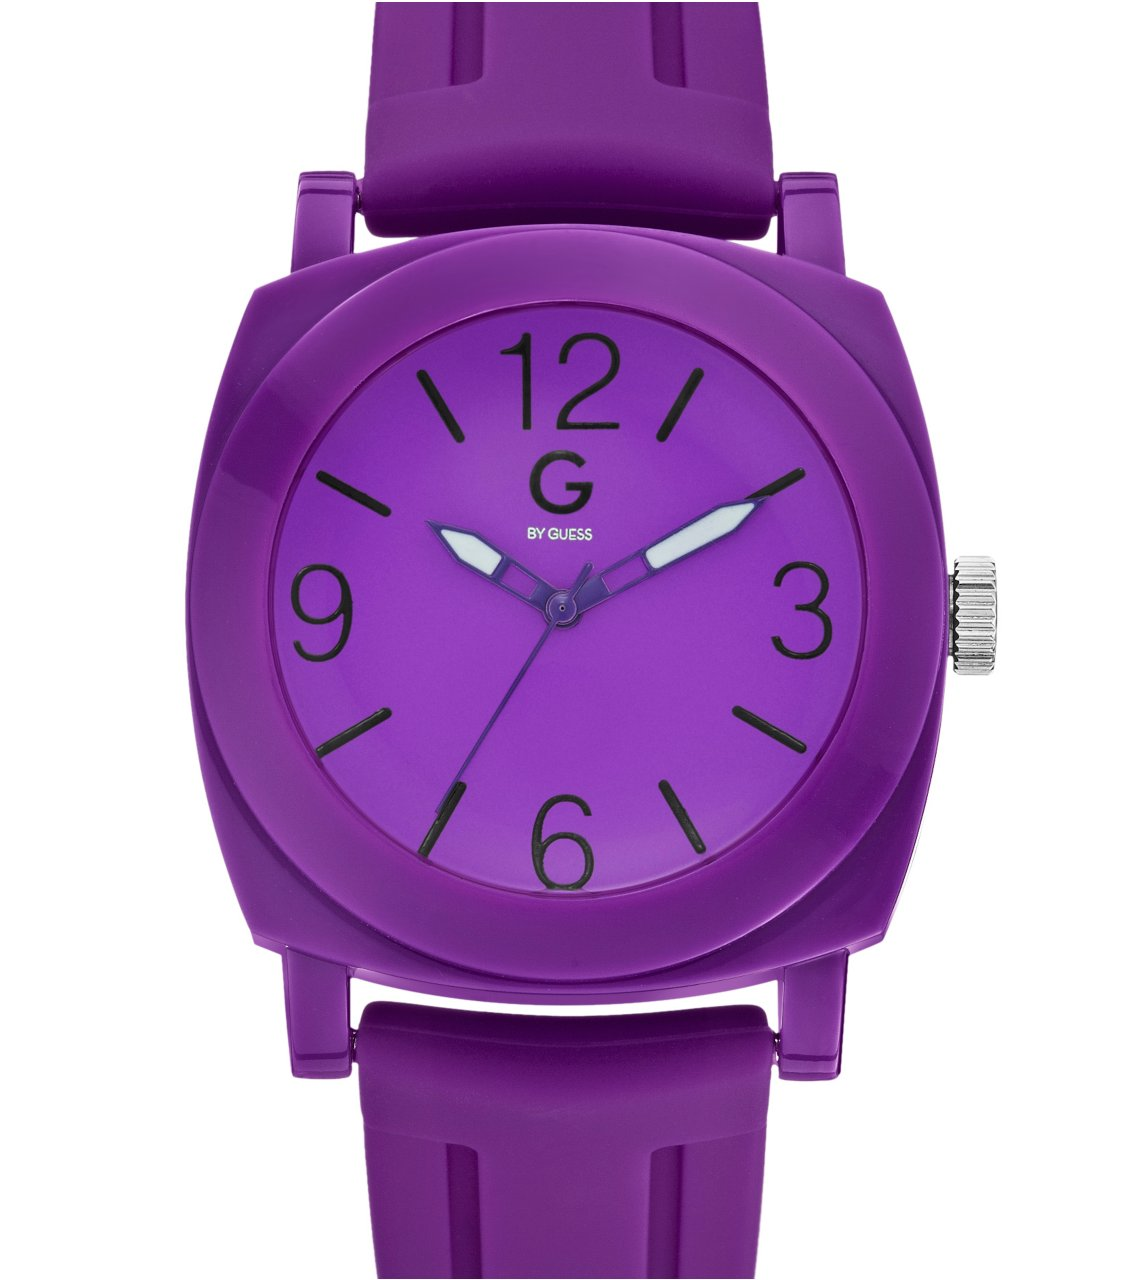 G by GUESS Purple Sport Strap Watch